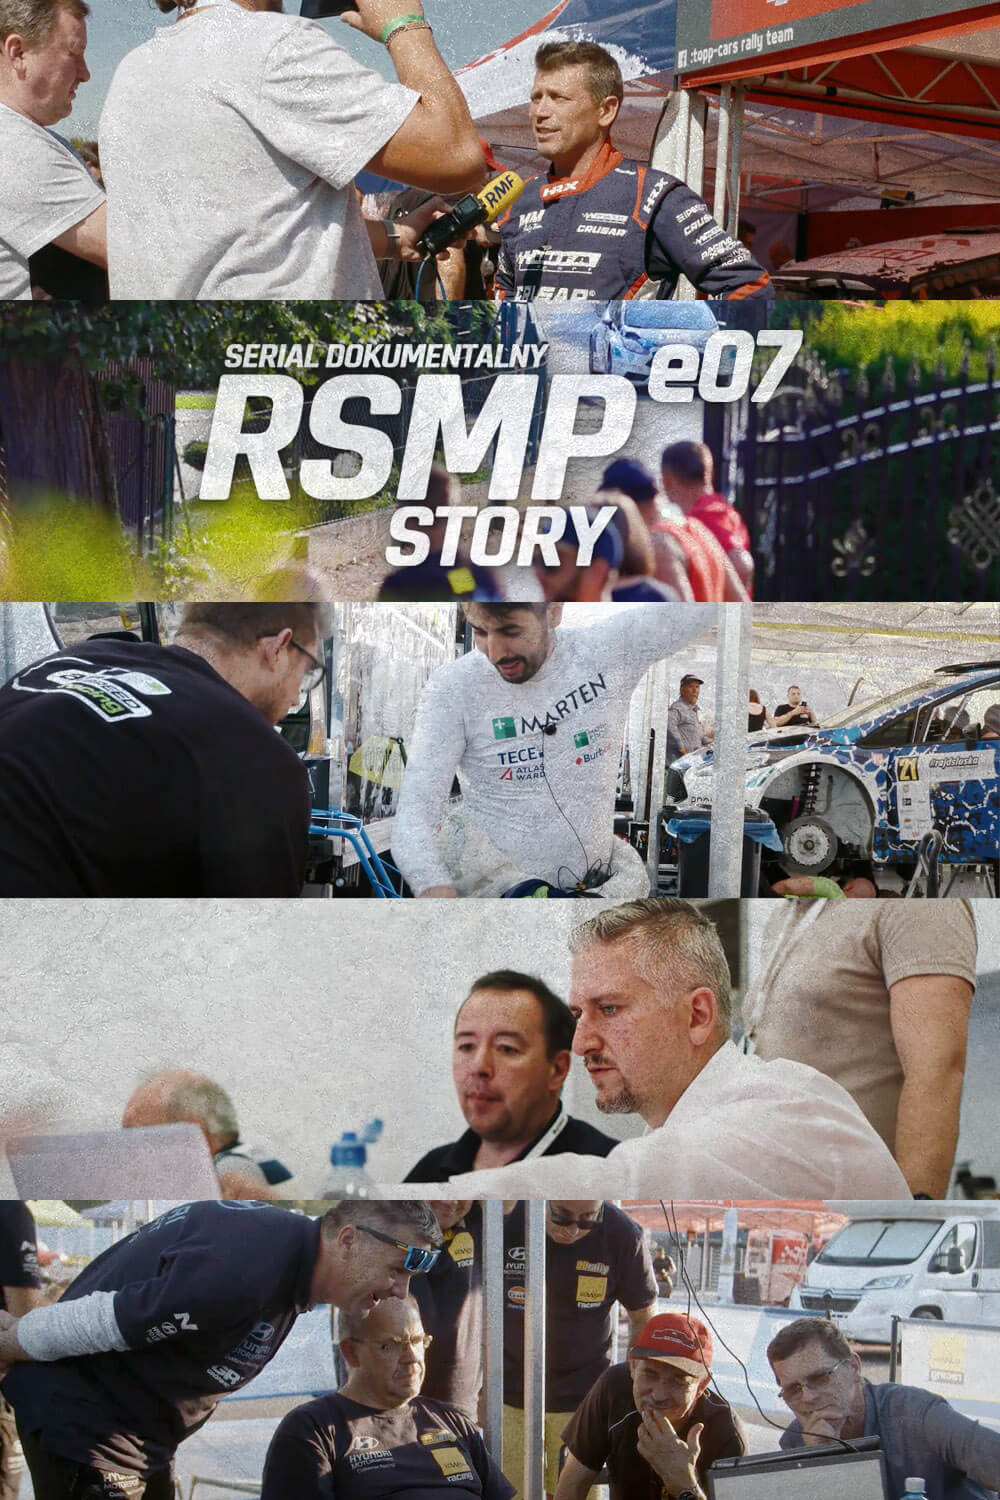 Poster - RSMP STORY s01e07